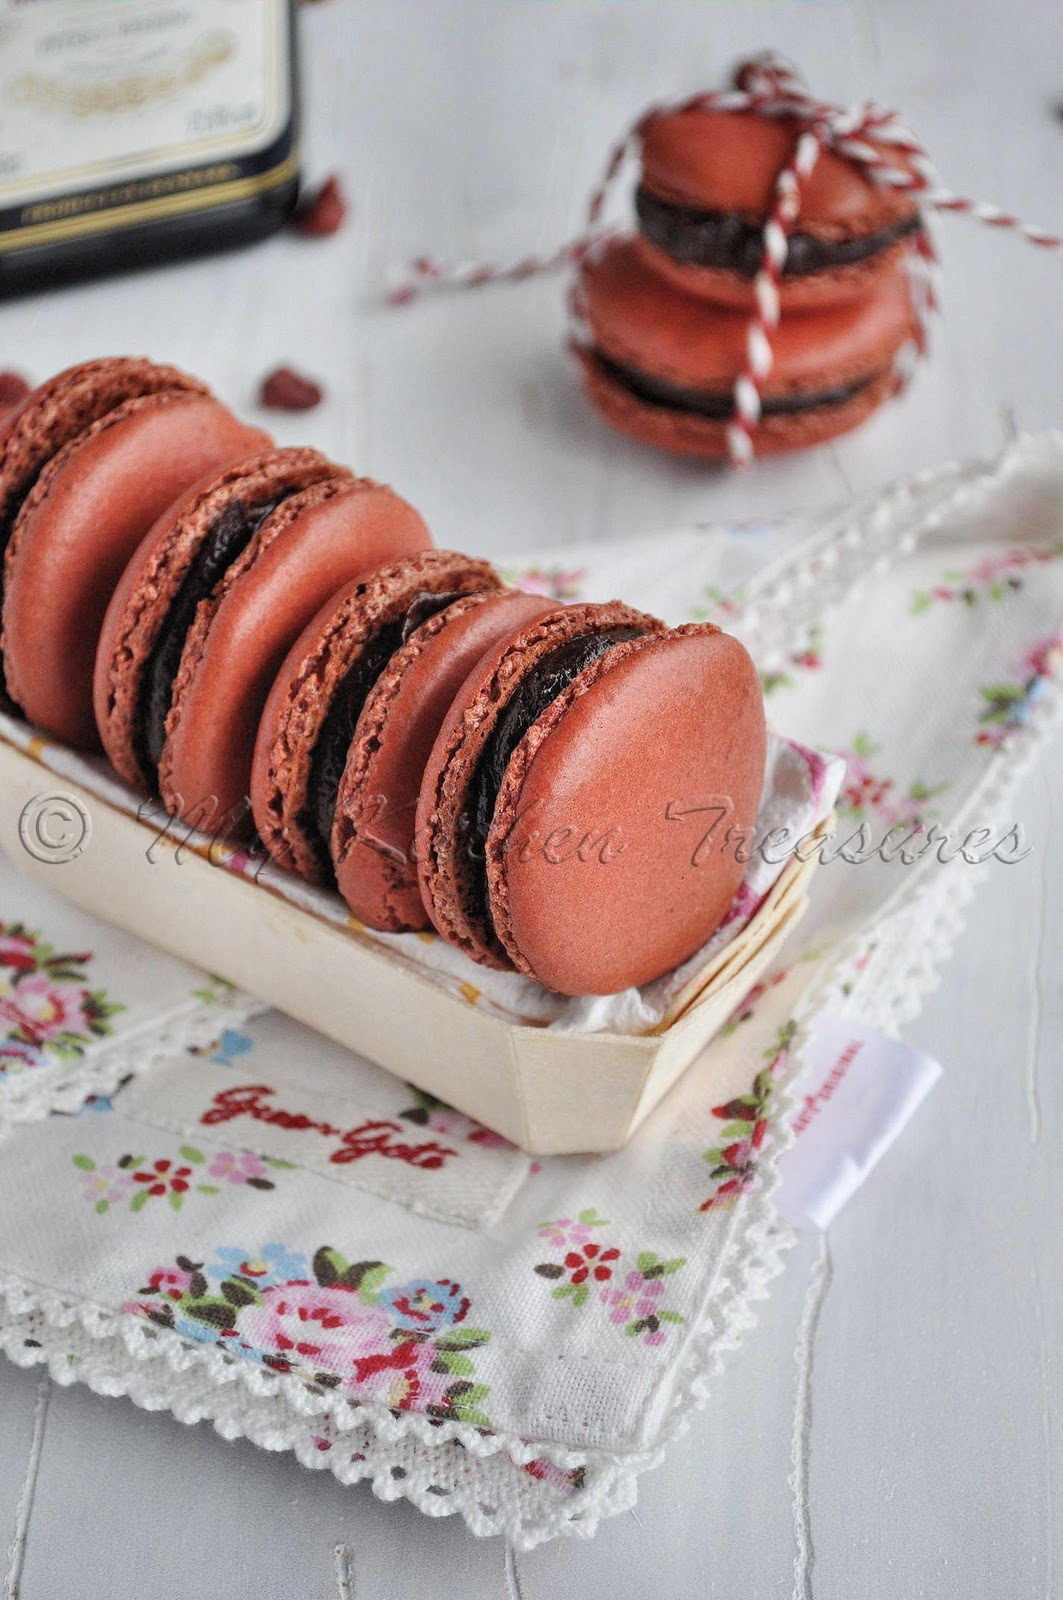 My Kitchen Treasures: Cherry Macaron With Heering Cherry Liqueur